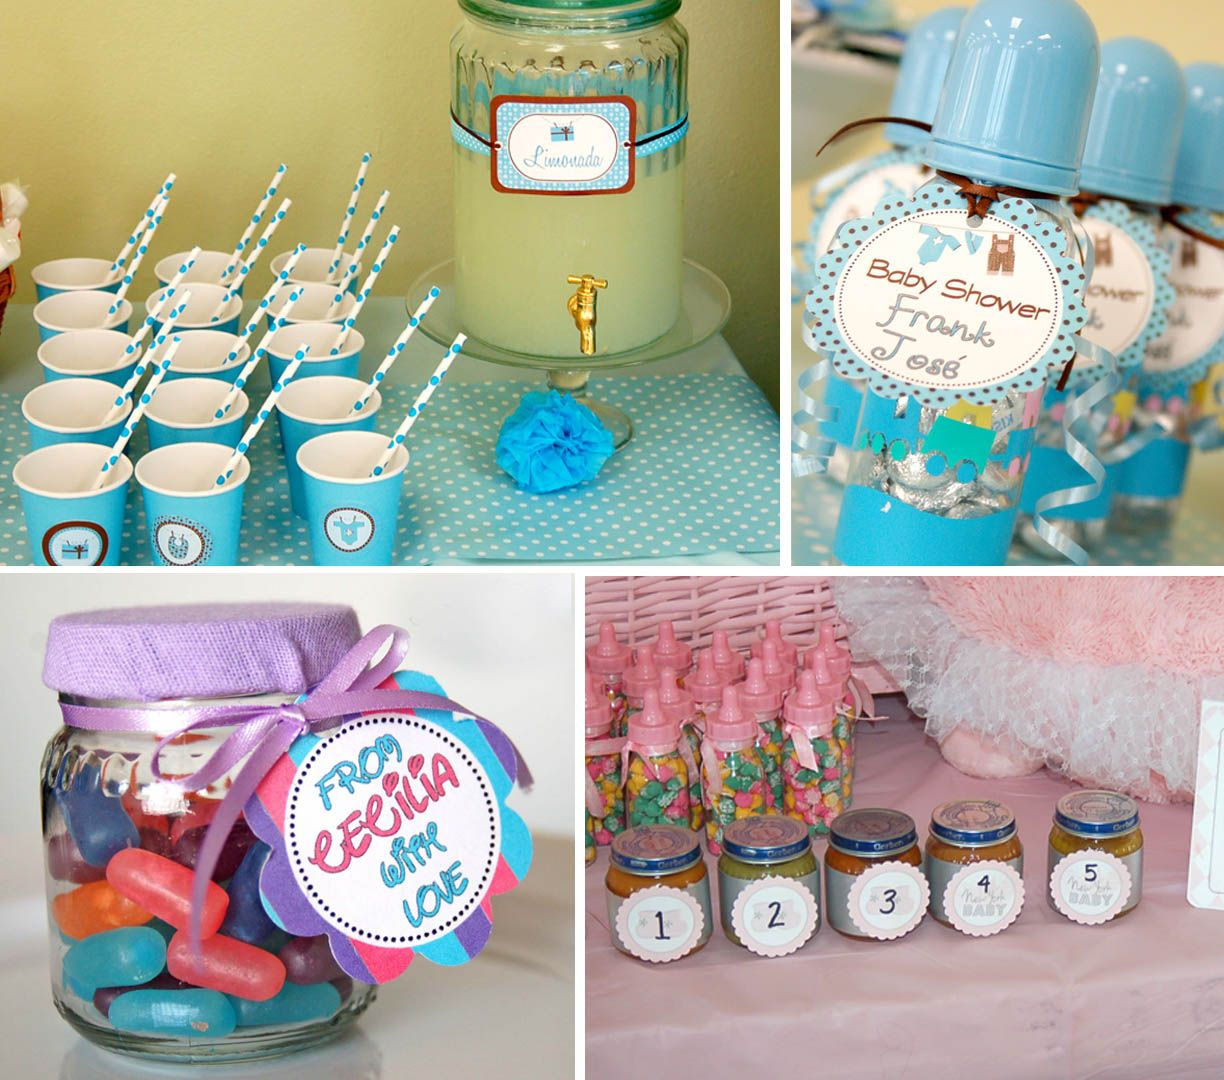 Baby shower ideas ideas for decorations baby showers for Baby shower food decoration ideas